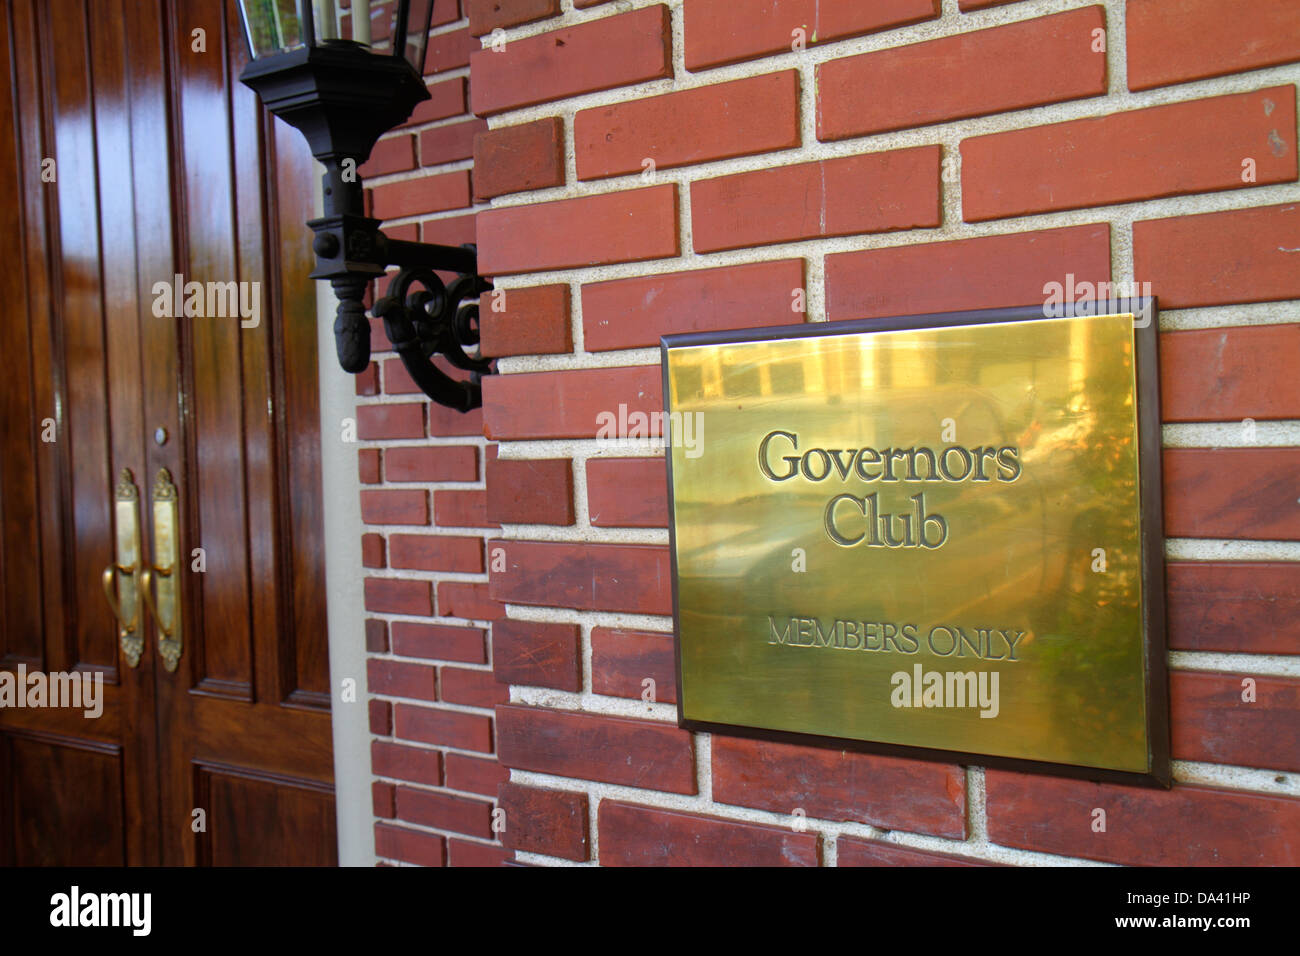 Tallahassee Florida sign Governors Club members only sign entrance - Stock Image